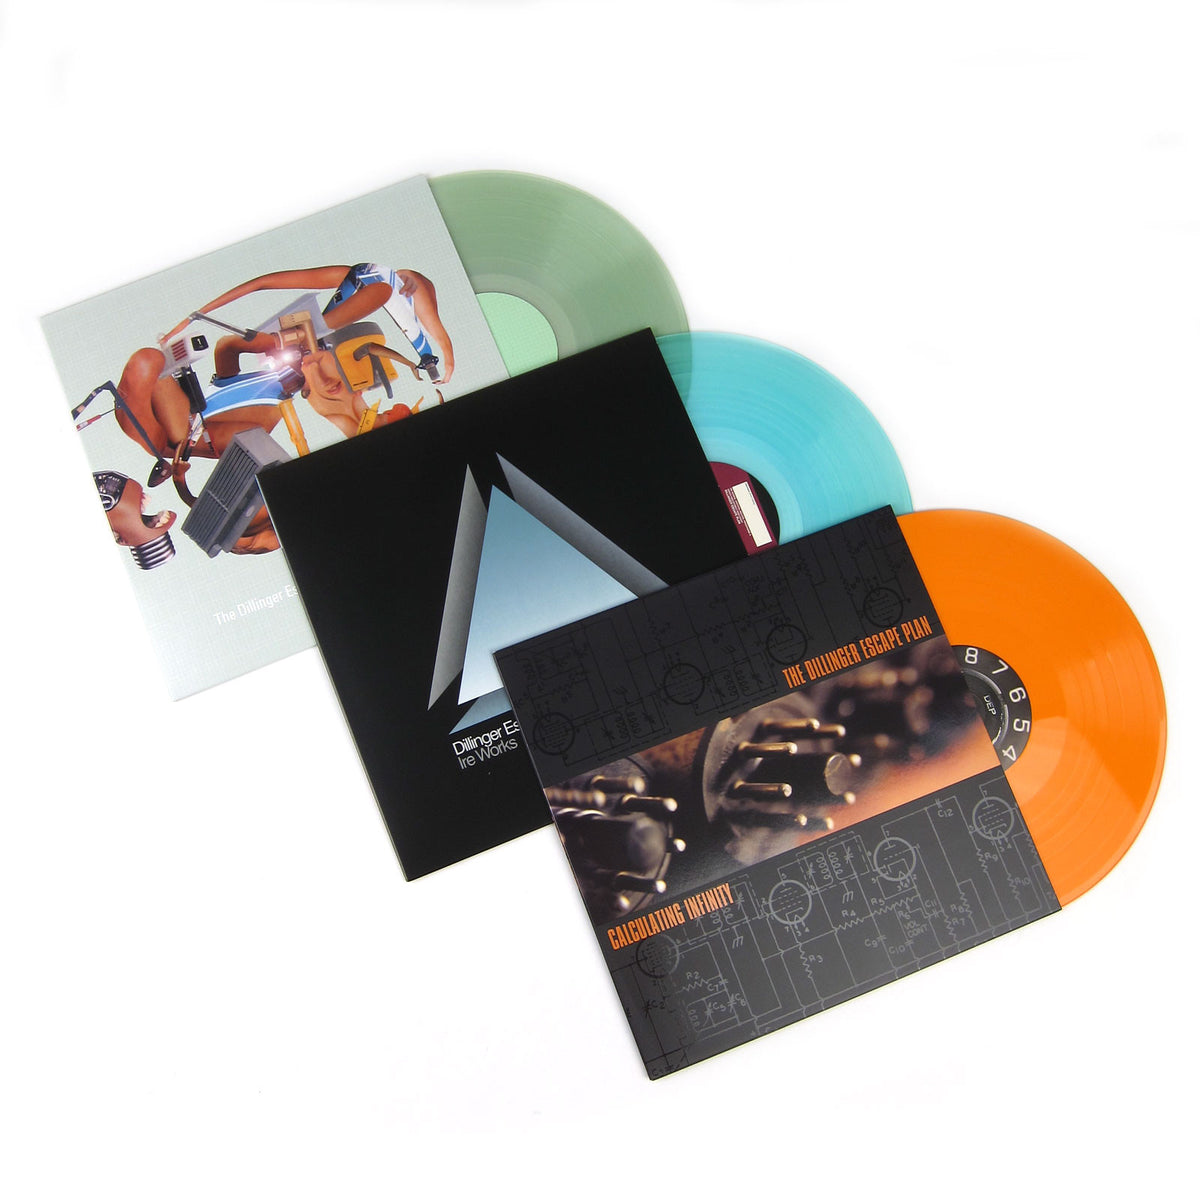 The Dillinger Escape Plan: Colored Vinyl LP Album Pack (Calculating Infinity, Miss Machine, Ire Works)